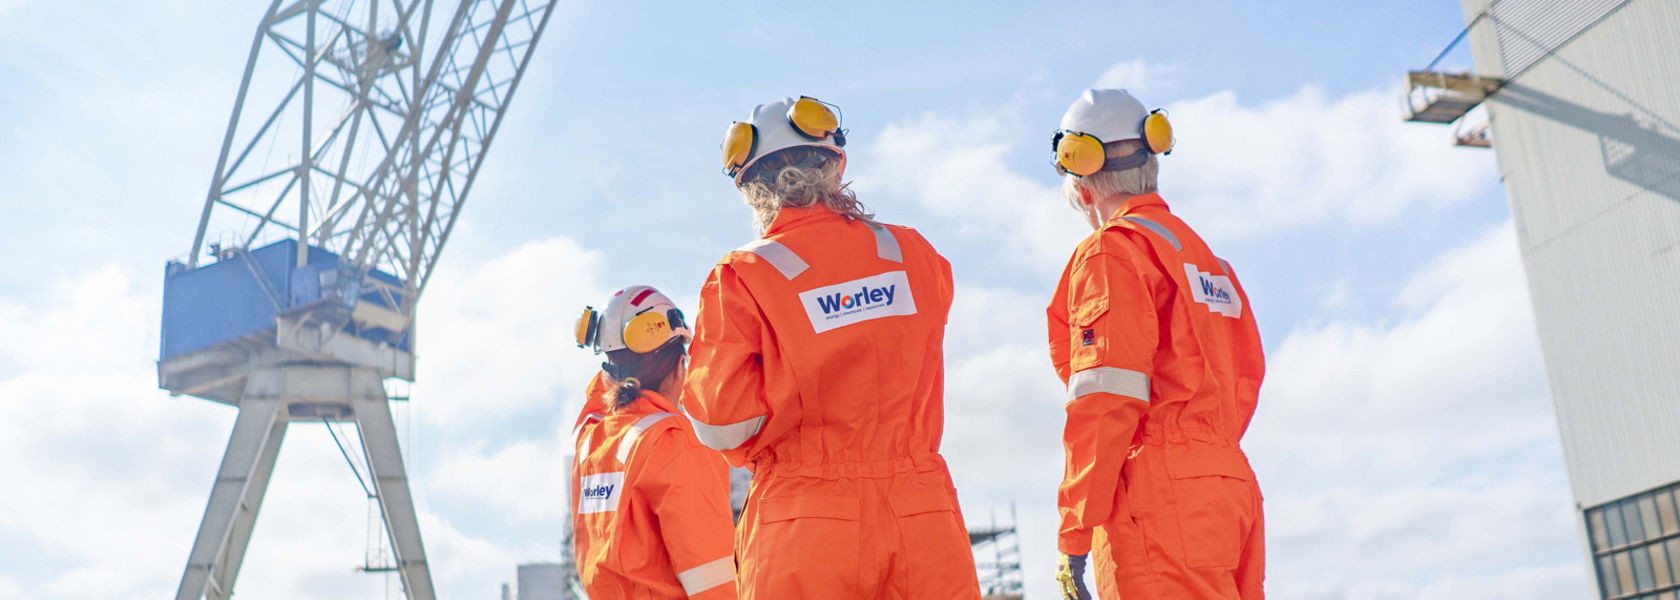 Worley takes over Jacobs' energy, resources business